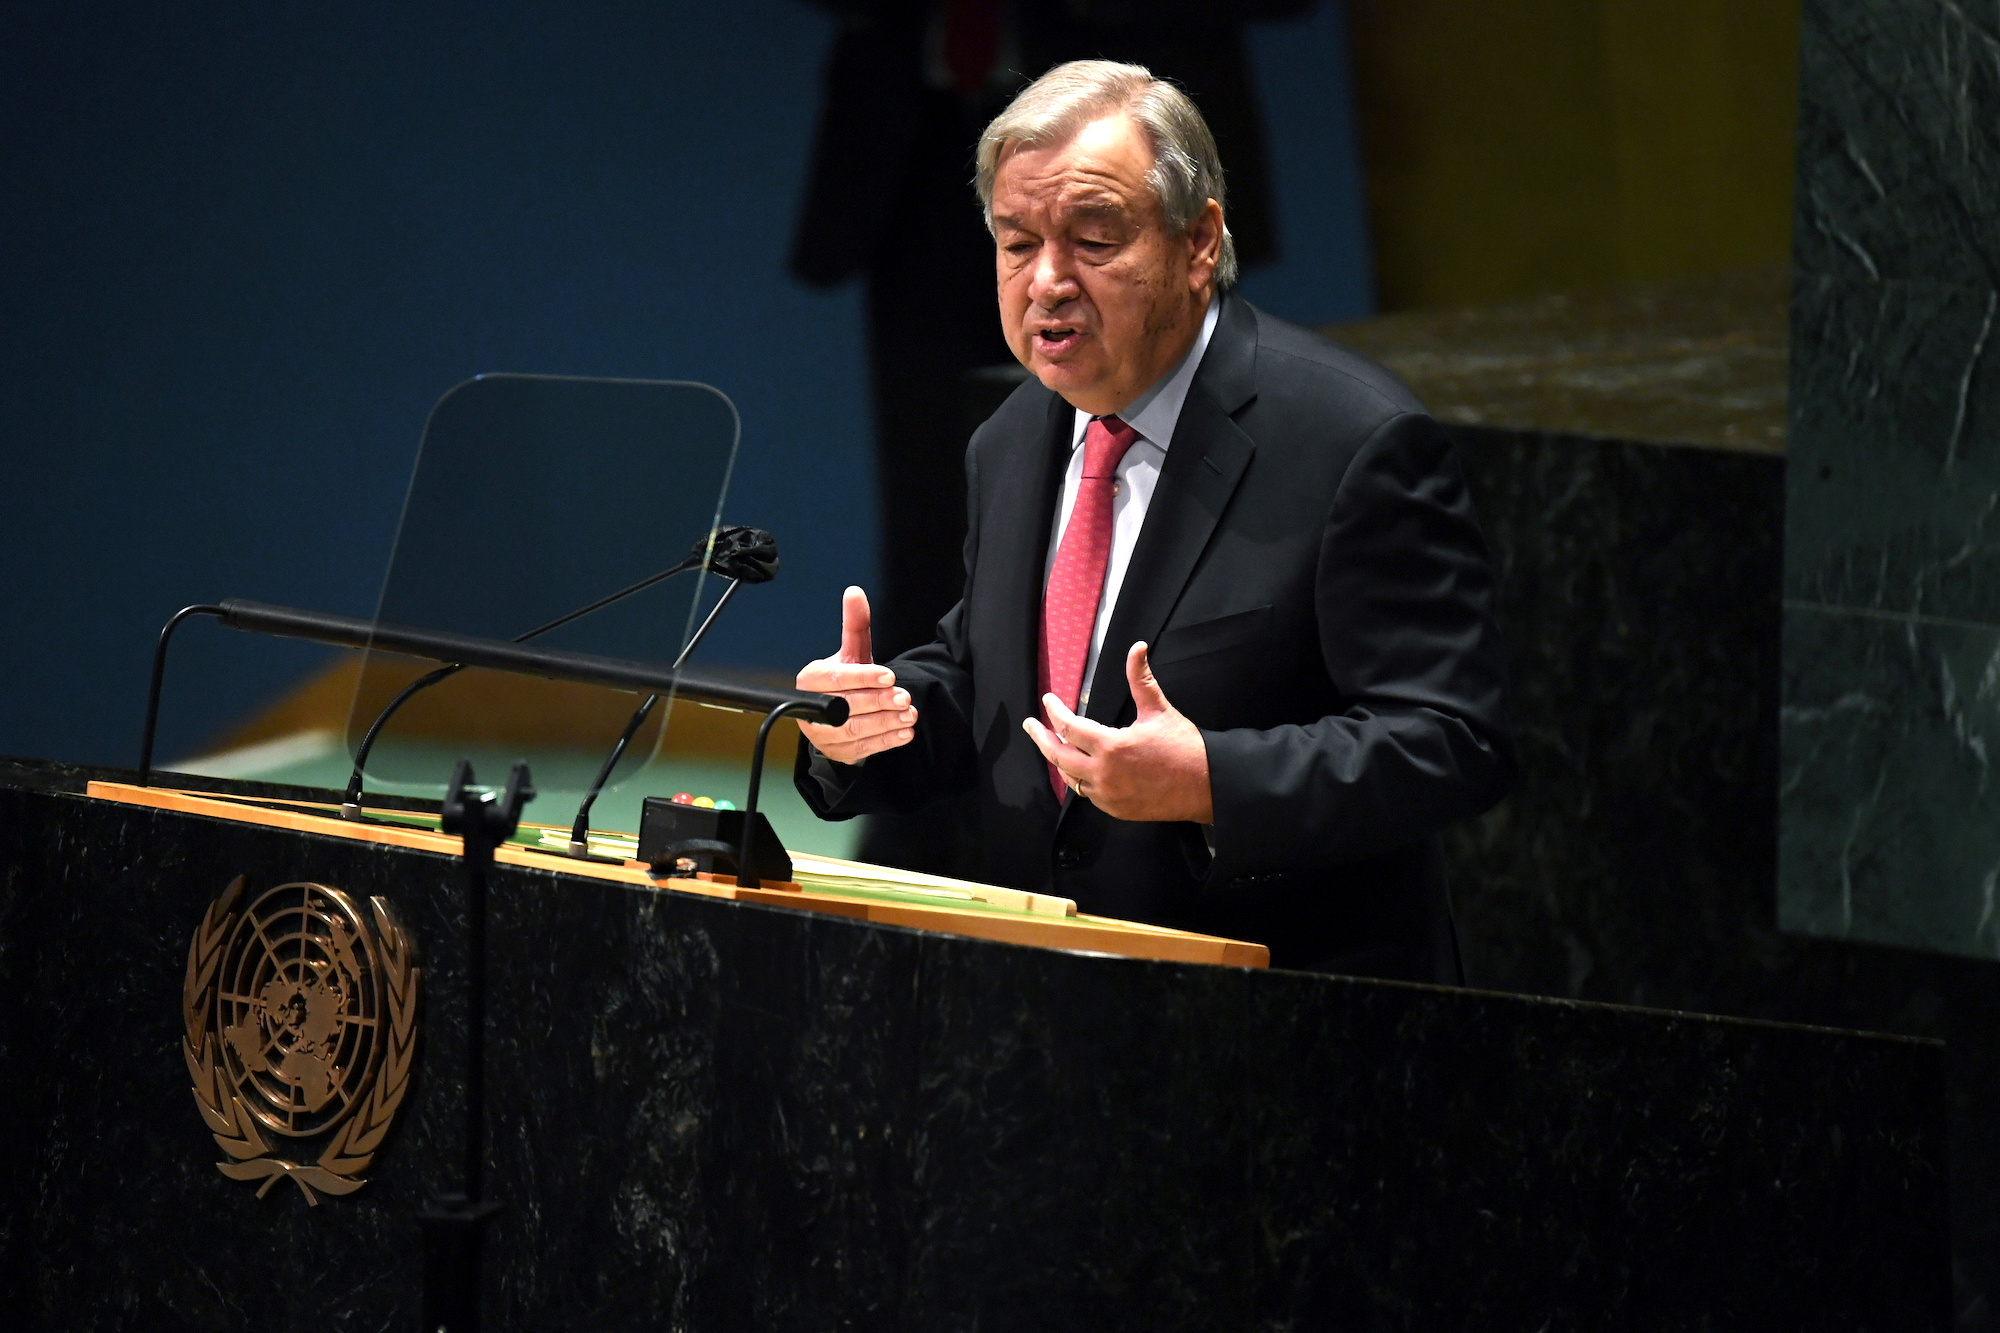 United Nations Secretary General Antonio Guterres speaks during the 76th Session of the General Assembly at UN Headquarters in New York